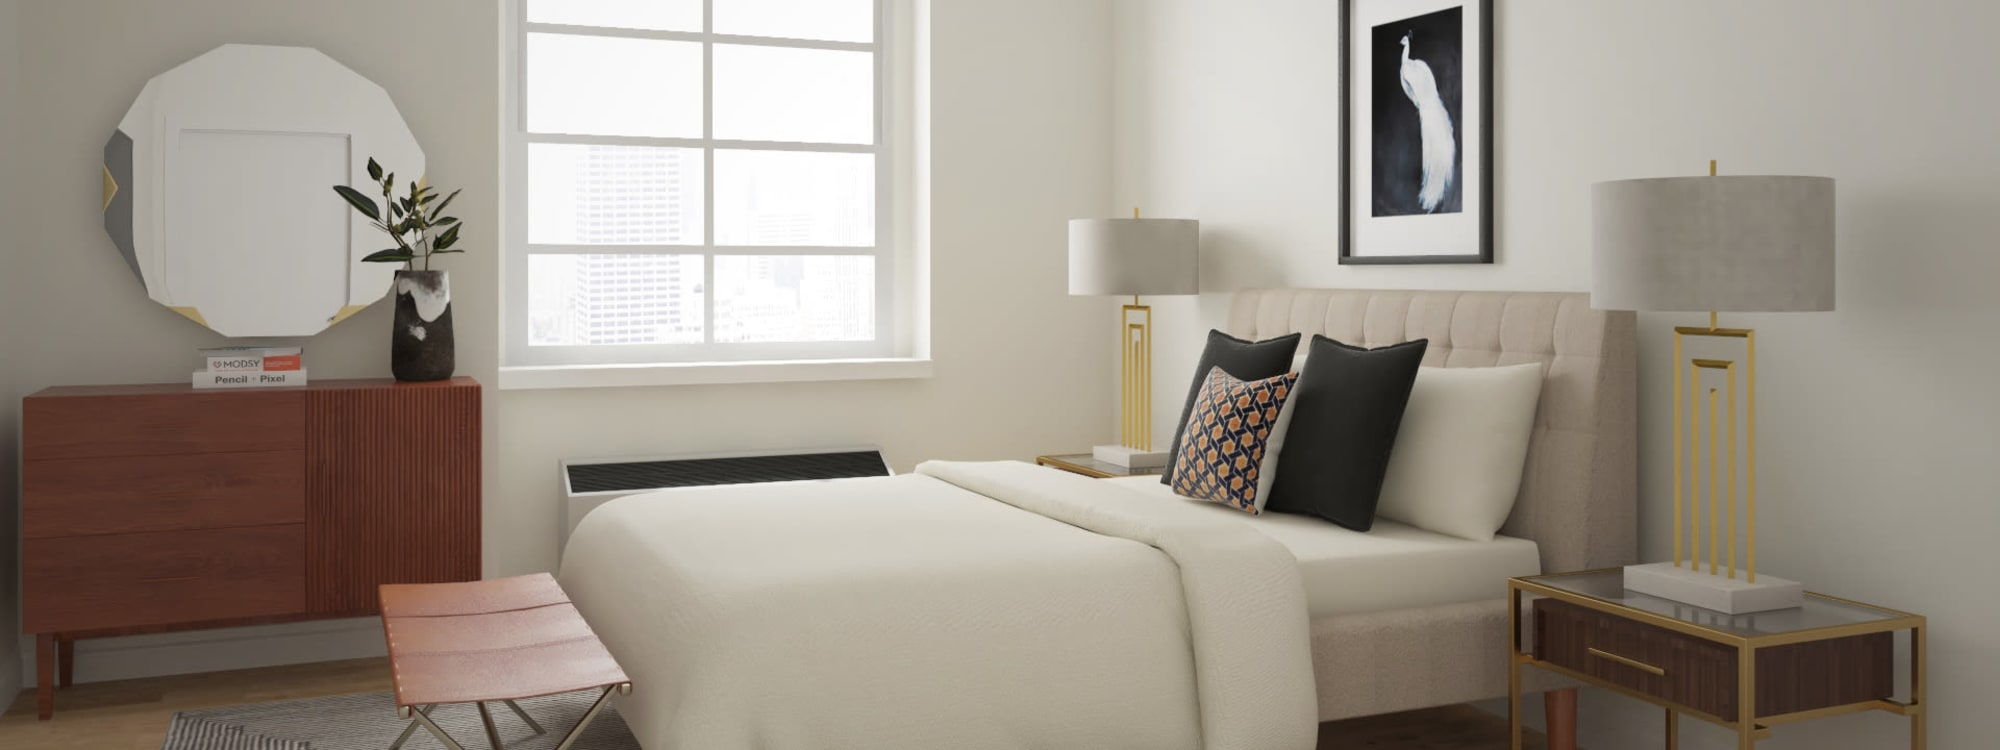 Availability at 21 West Street in New York, New York